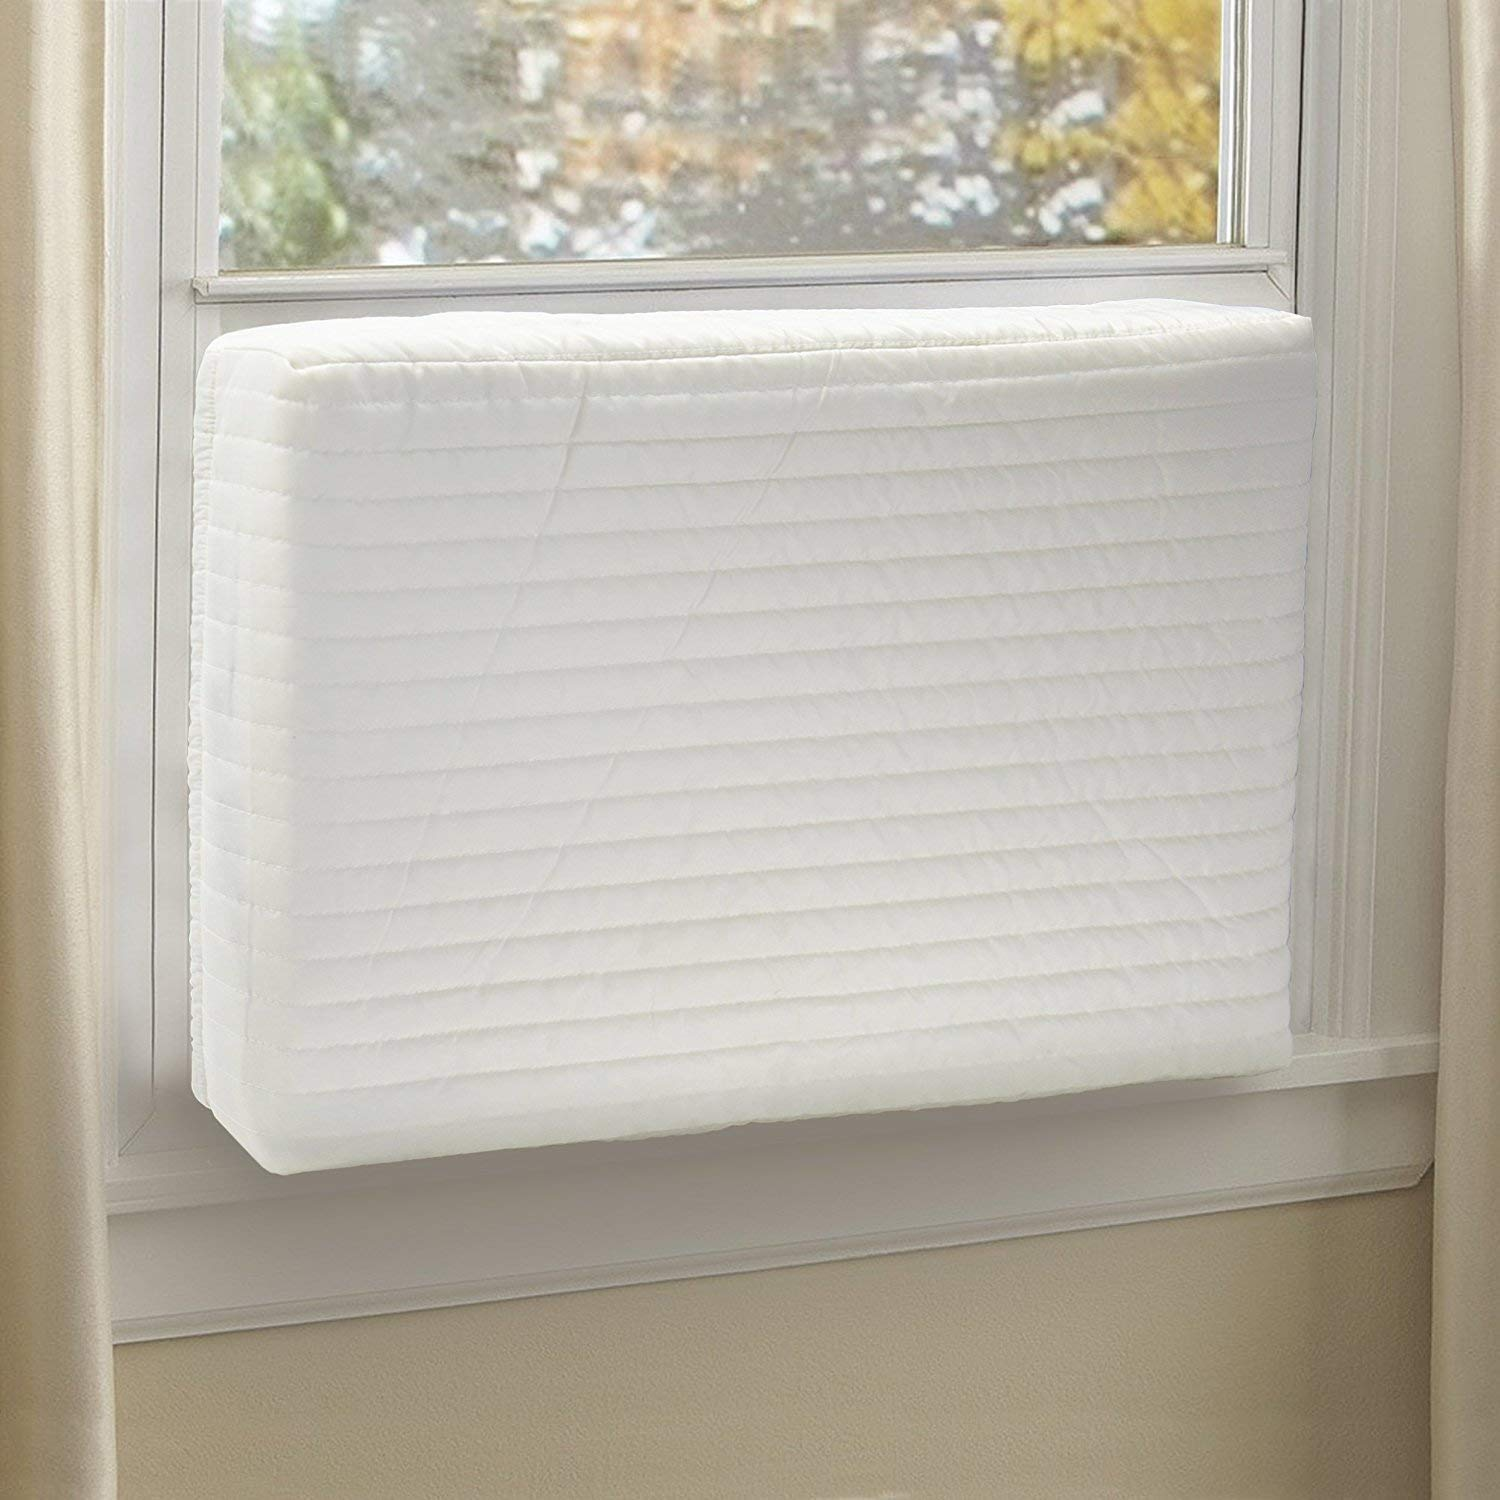 Jeacent Indoor Air Conditioner Cover Double Insulation Medium by Jeacent